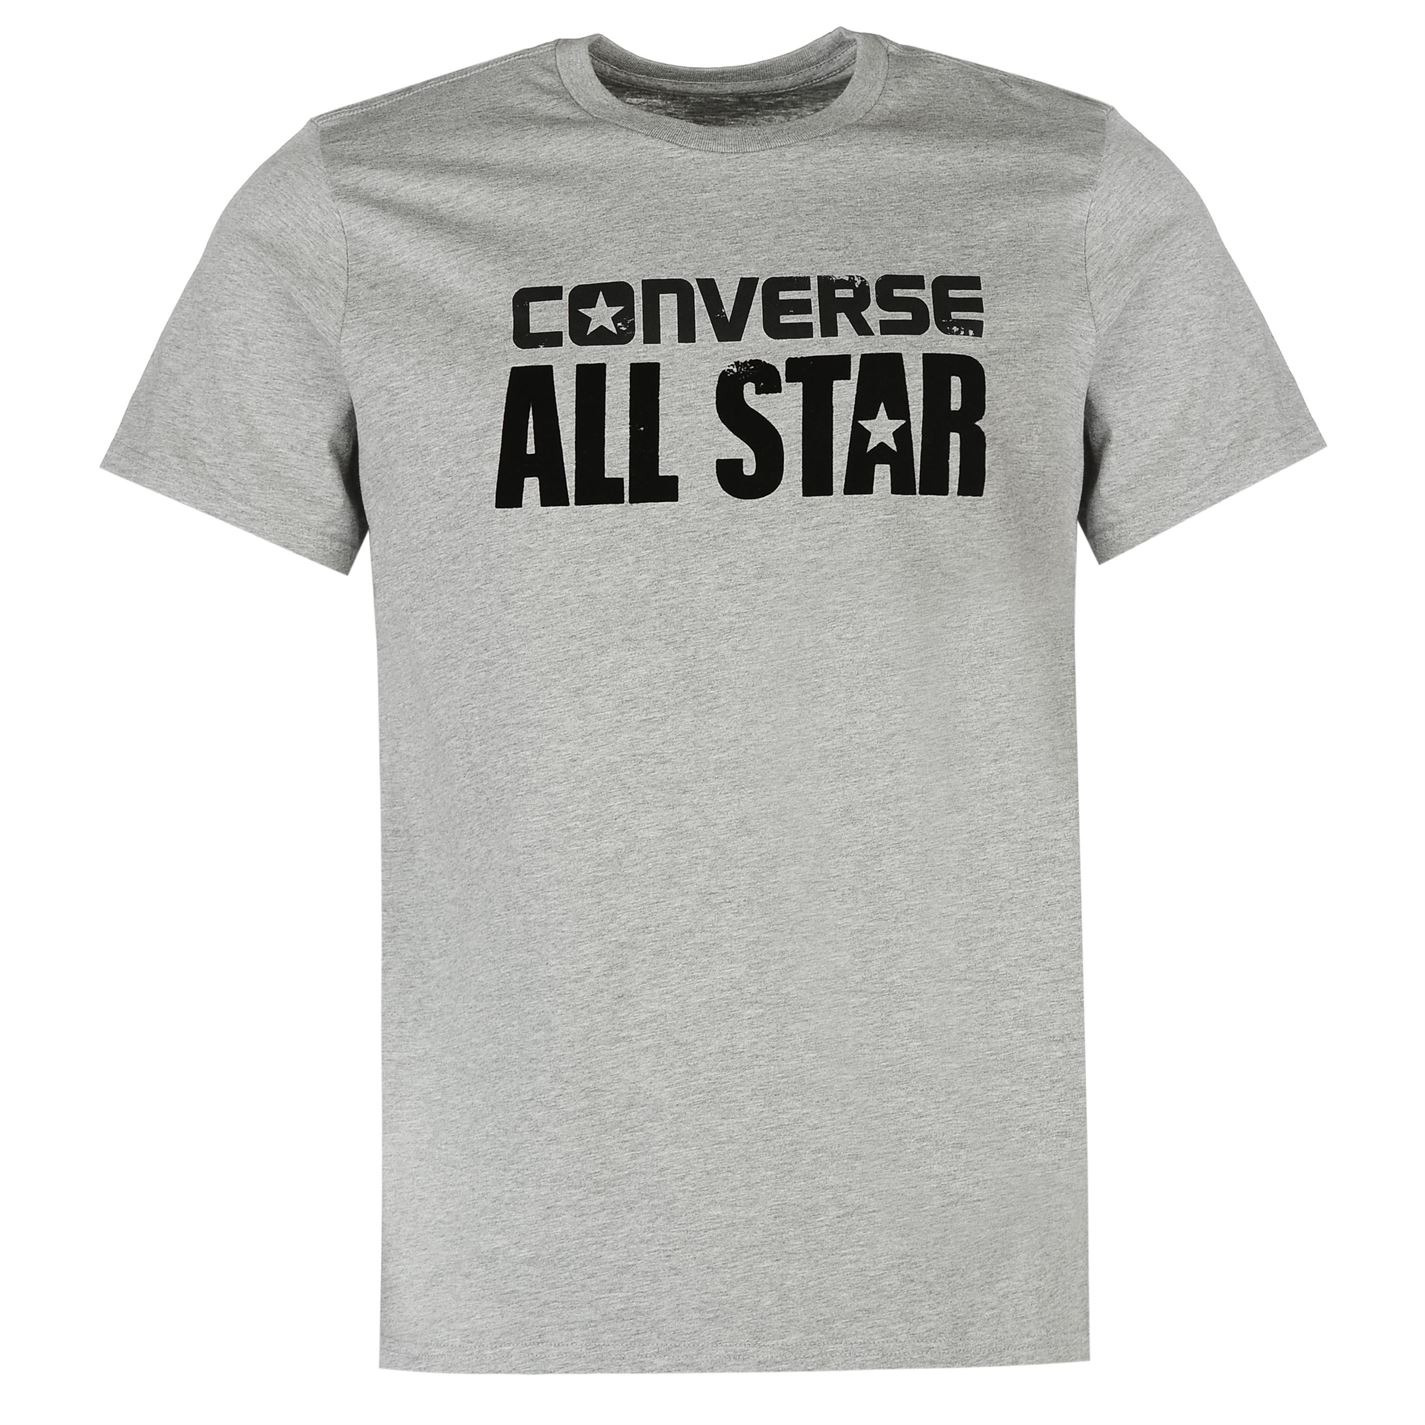 a7854fcd3abc Mens T-shirt Converse Box Grey. Loading zoom